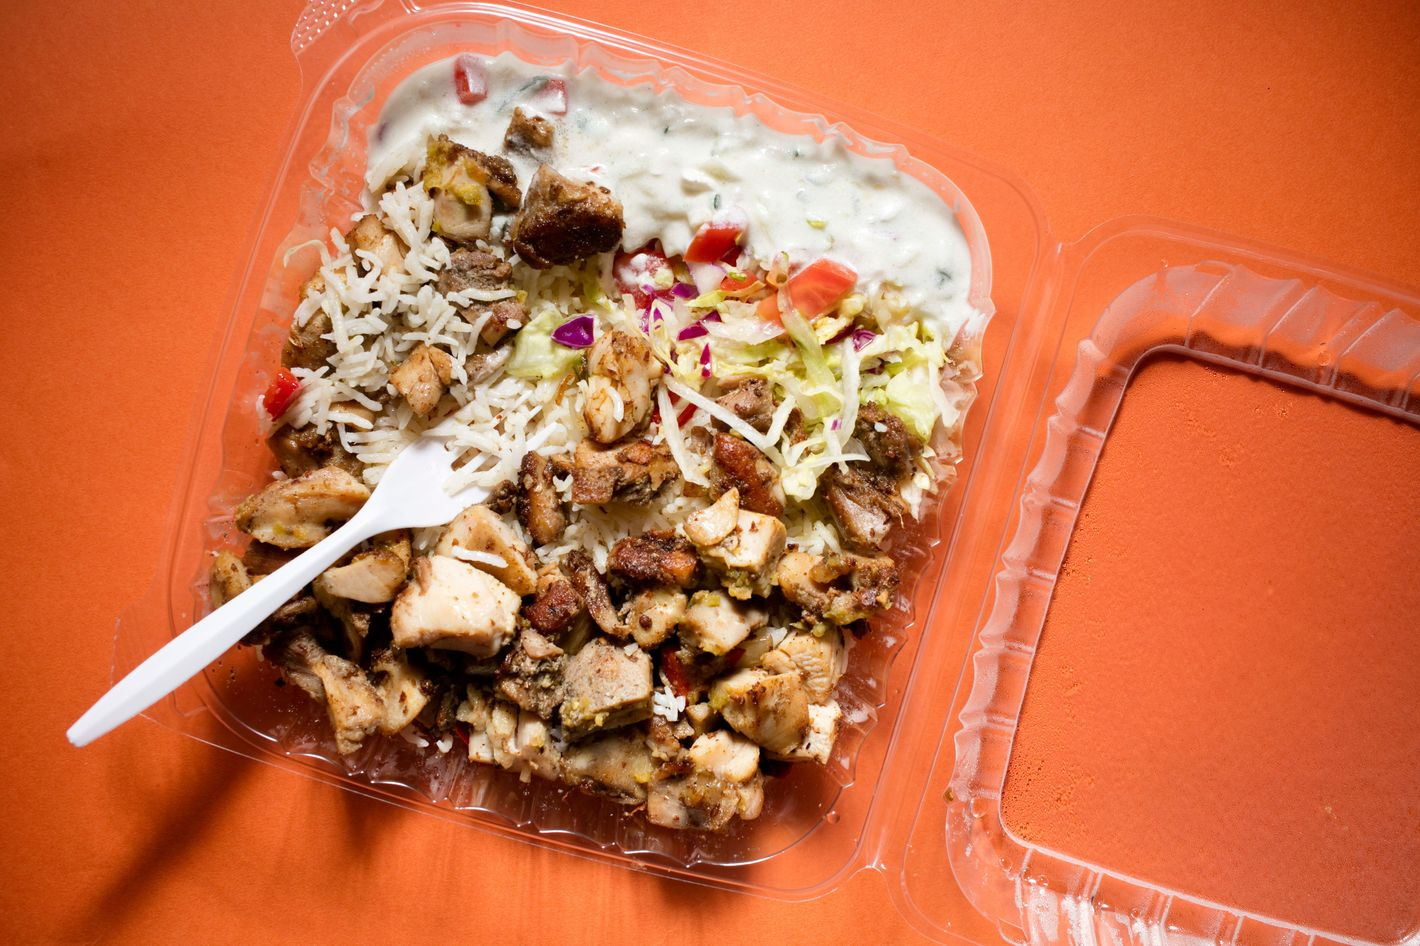 The Absolute Best Halal Cart in NYC